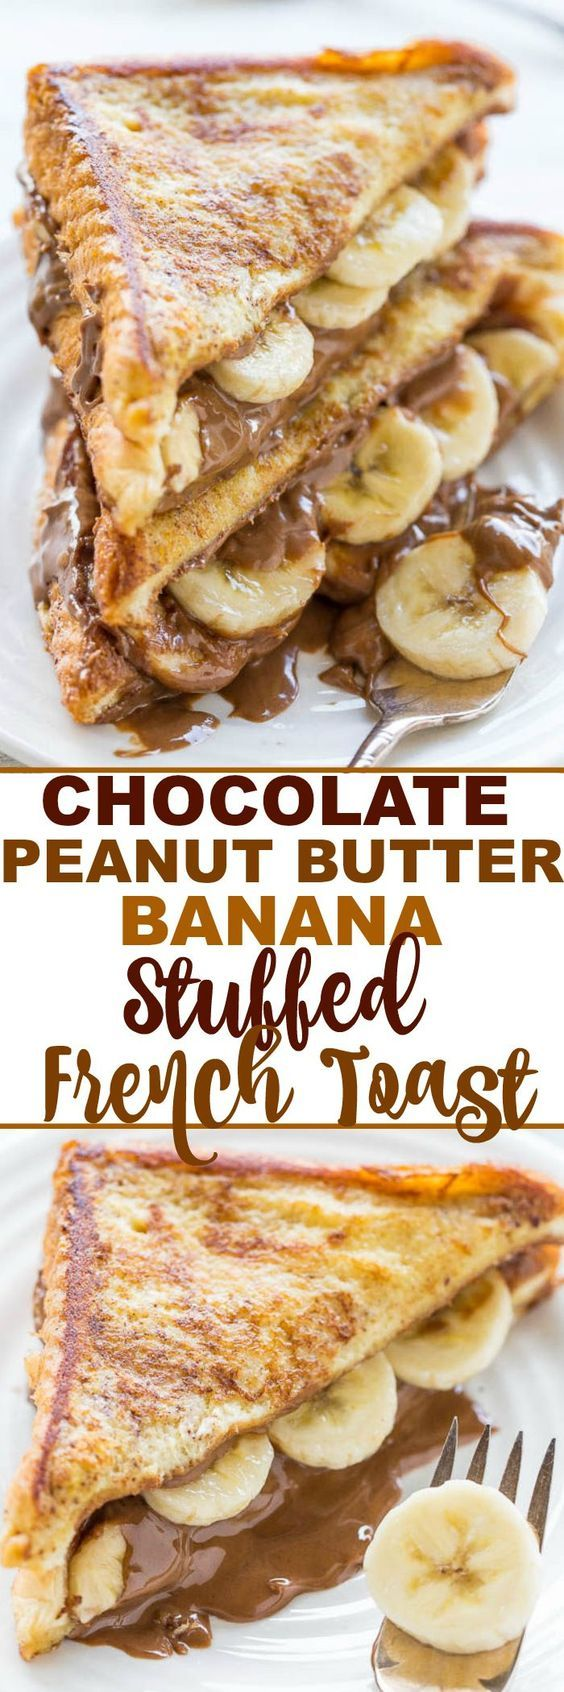 Chocolate Peanut Butter Banana Stuffed French Toast - A decadent twist on peanut butter and banana sandwiches!! Great for lazy weekend mornings or holiday brunches! Easy and the BEST French toast ever!!: